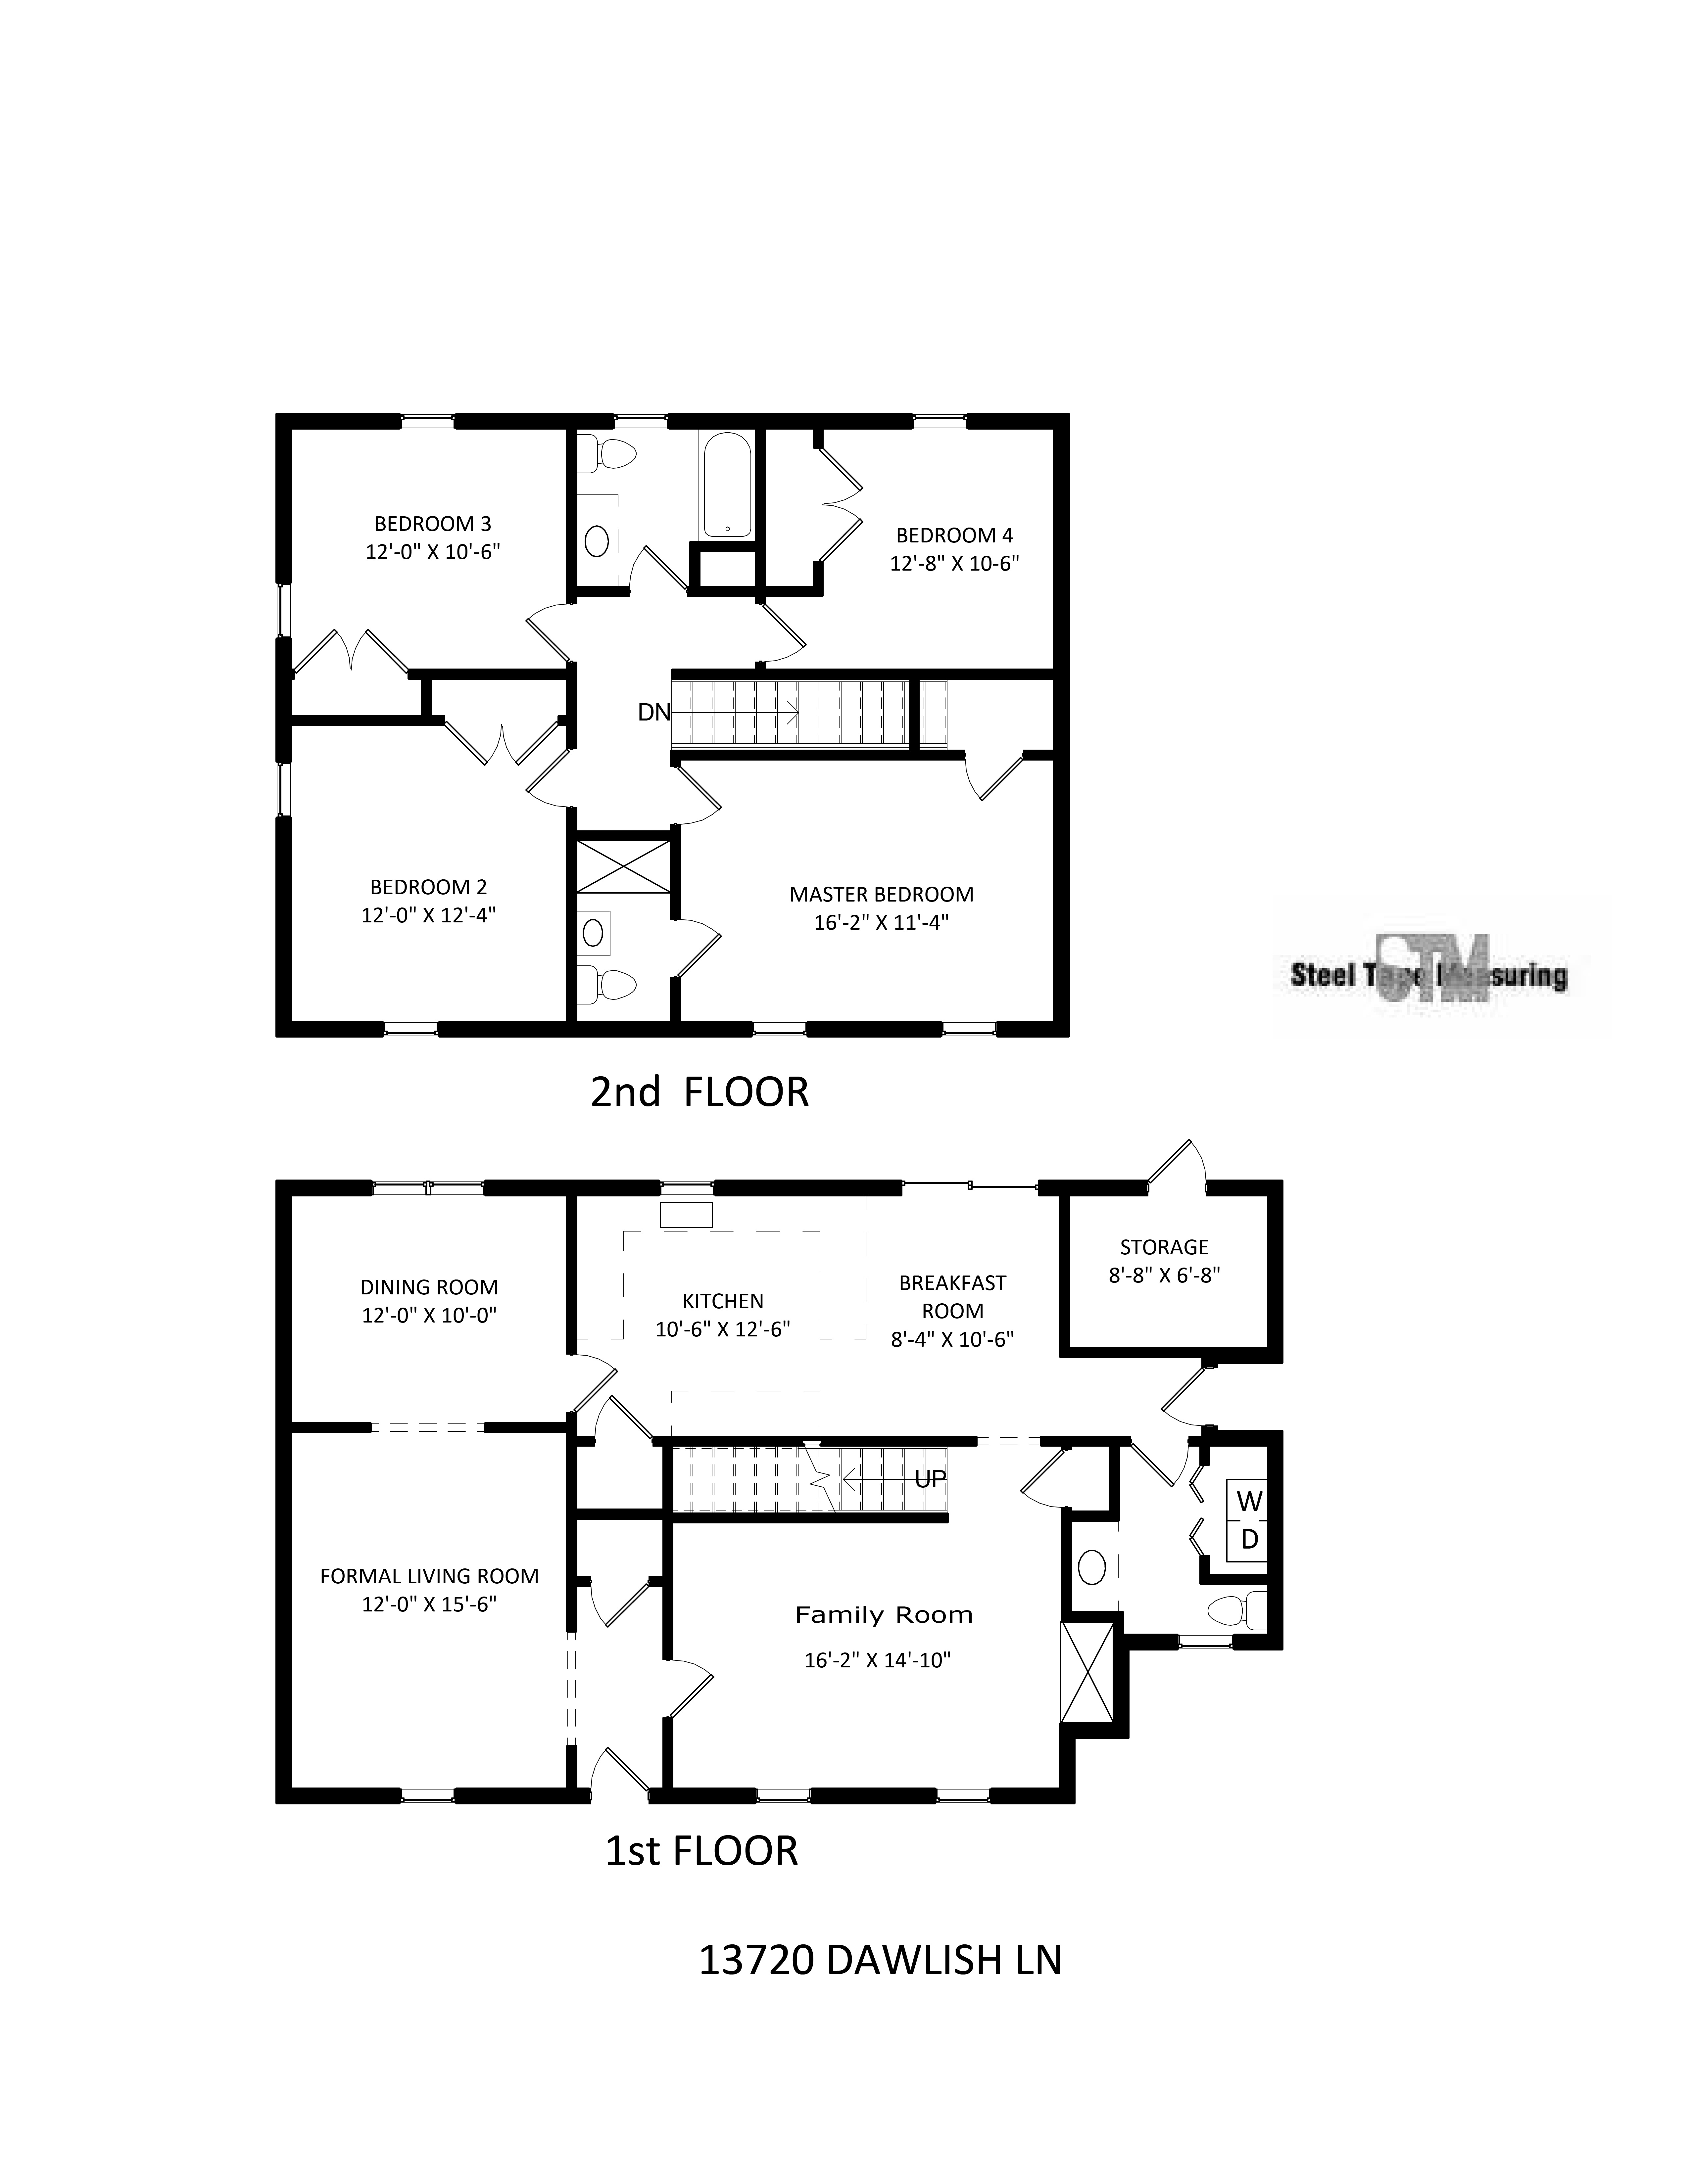 Floor Plan for 13720 Dawlish Lane in Danby in Pineville, NC